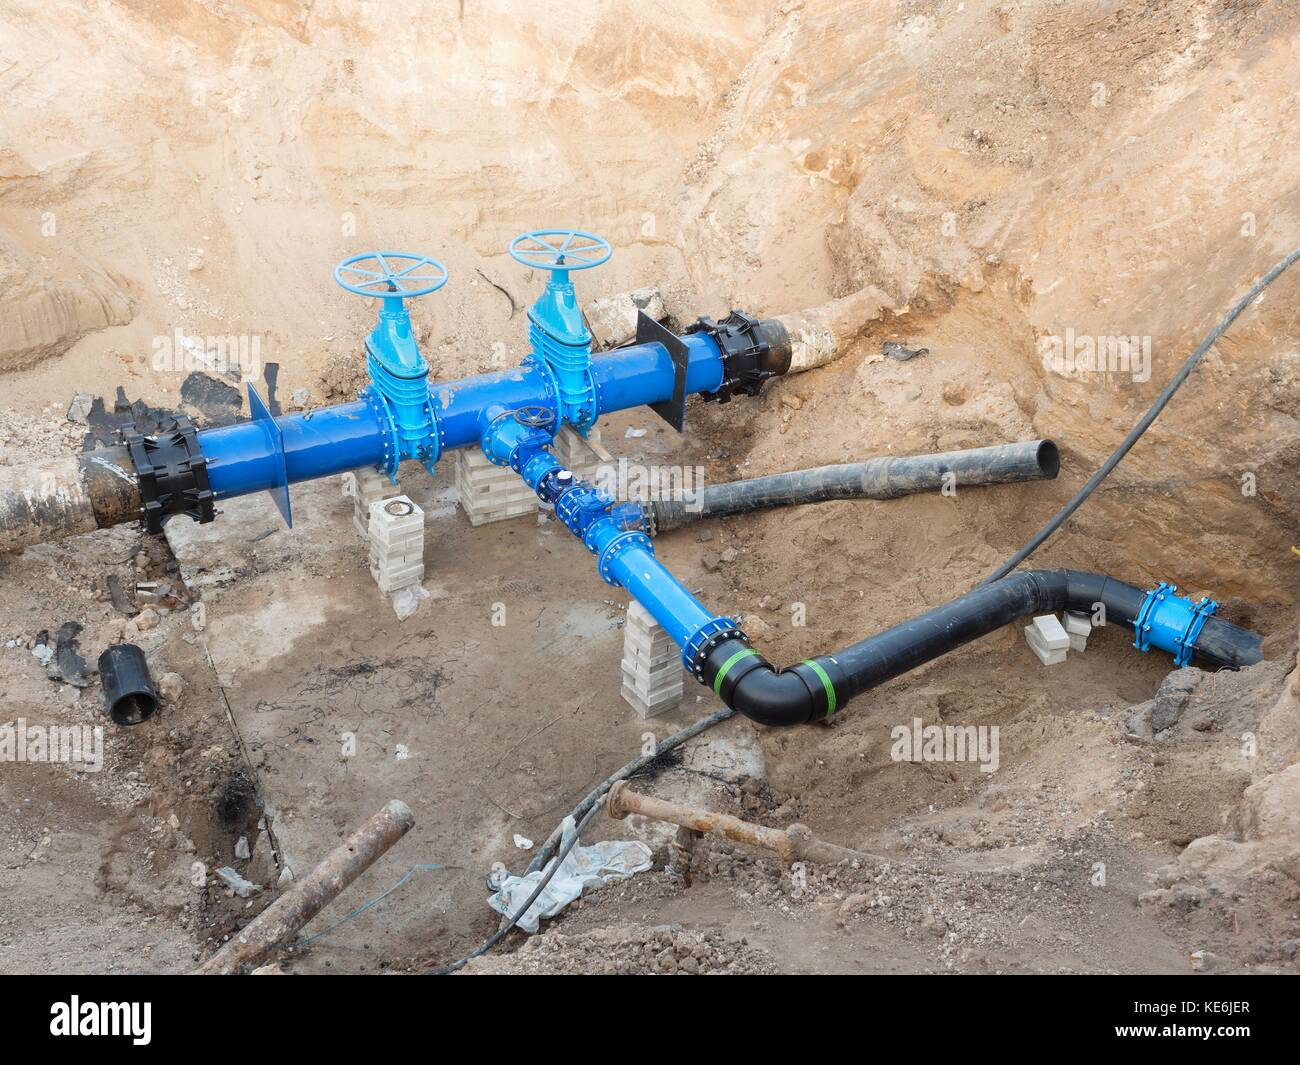 Drink  water pipes joined with new blue Gate valves and new black waga multi joint members. Finished repaired piping - Stock Image